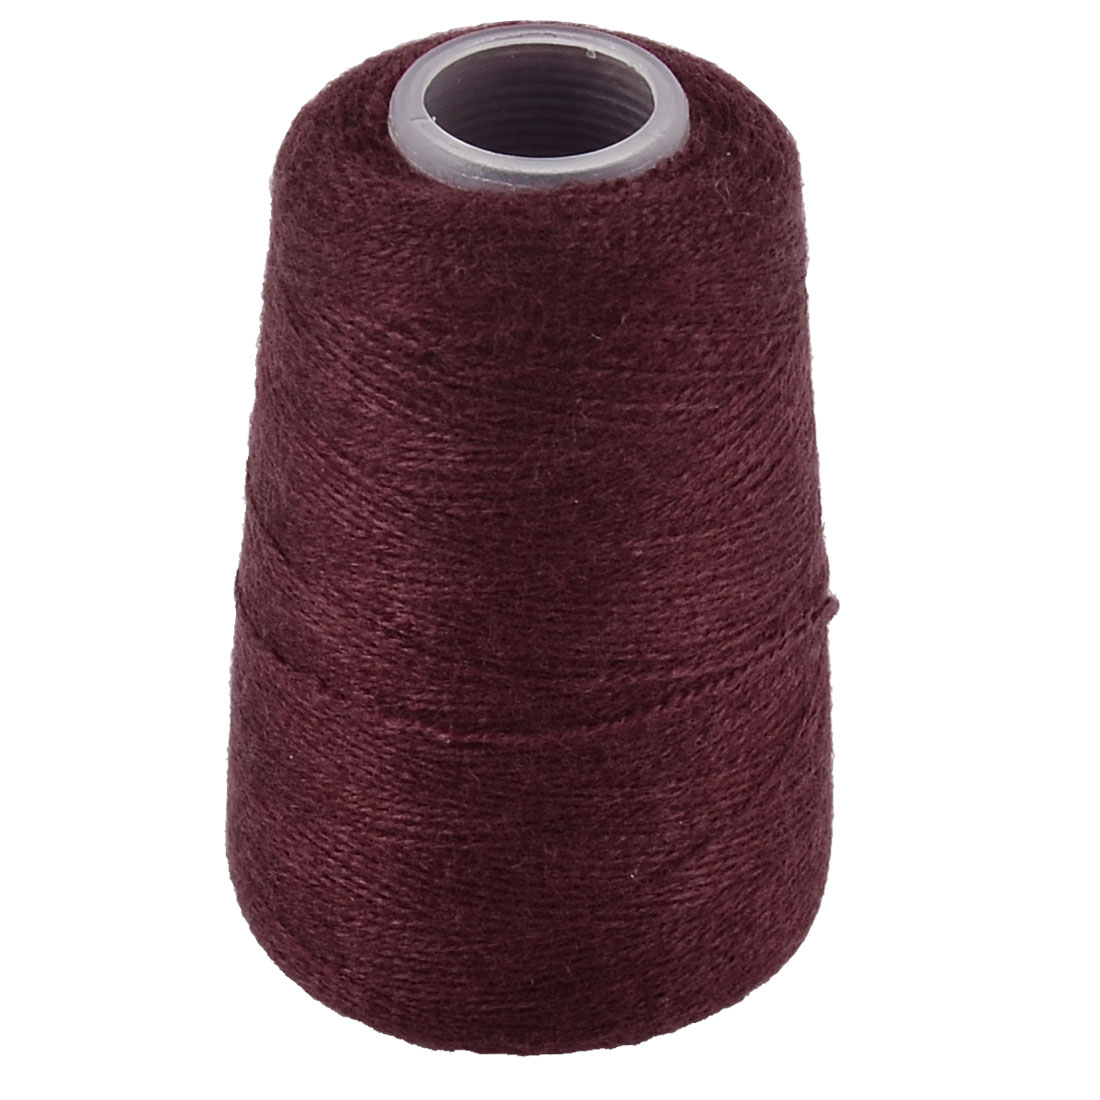 Tailor Tools Wool Cotton Soft and Warm Cashmere Yarn Knitting Strings Lines Gray